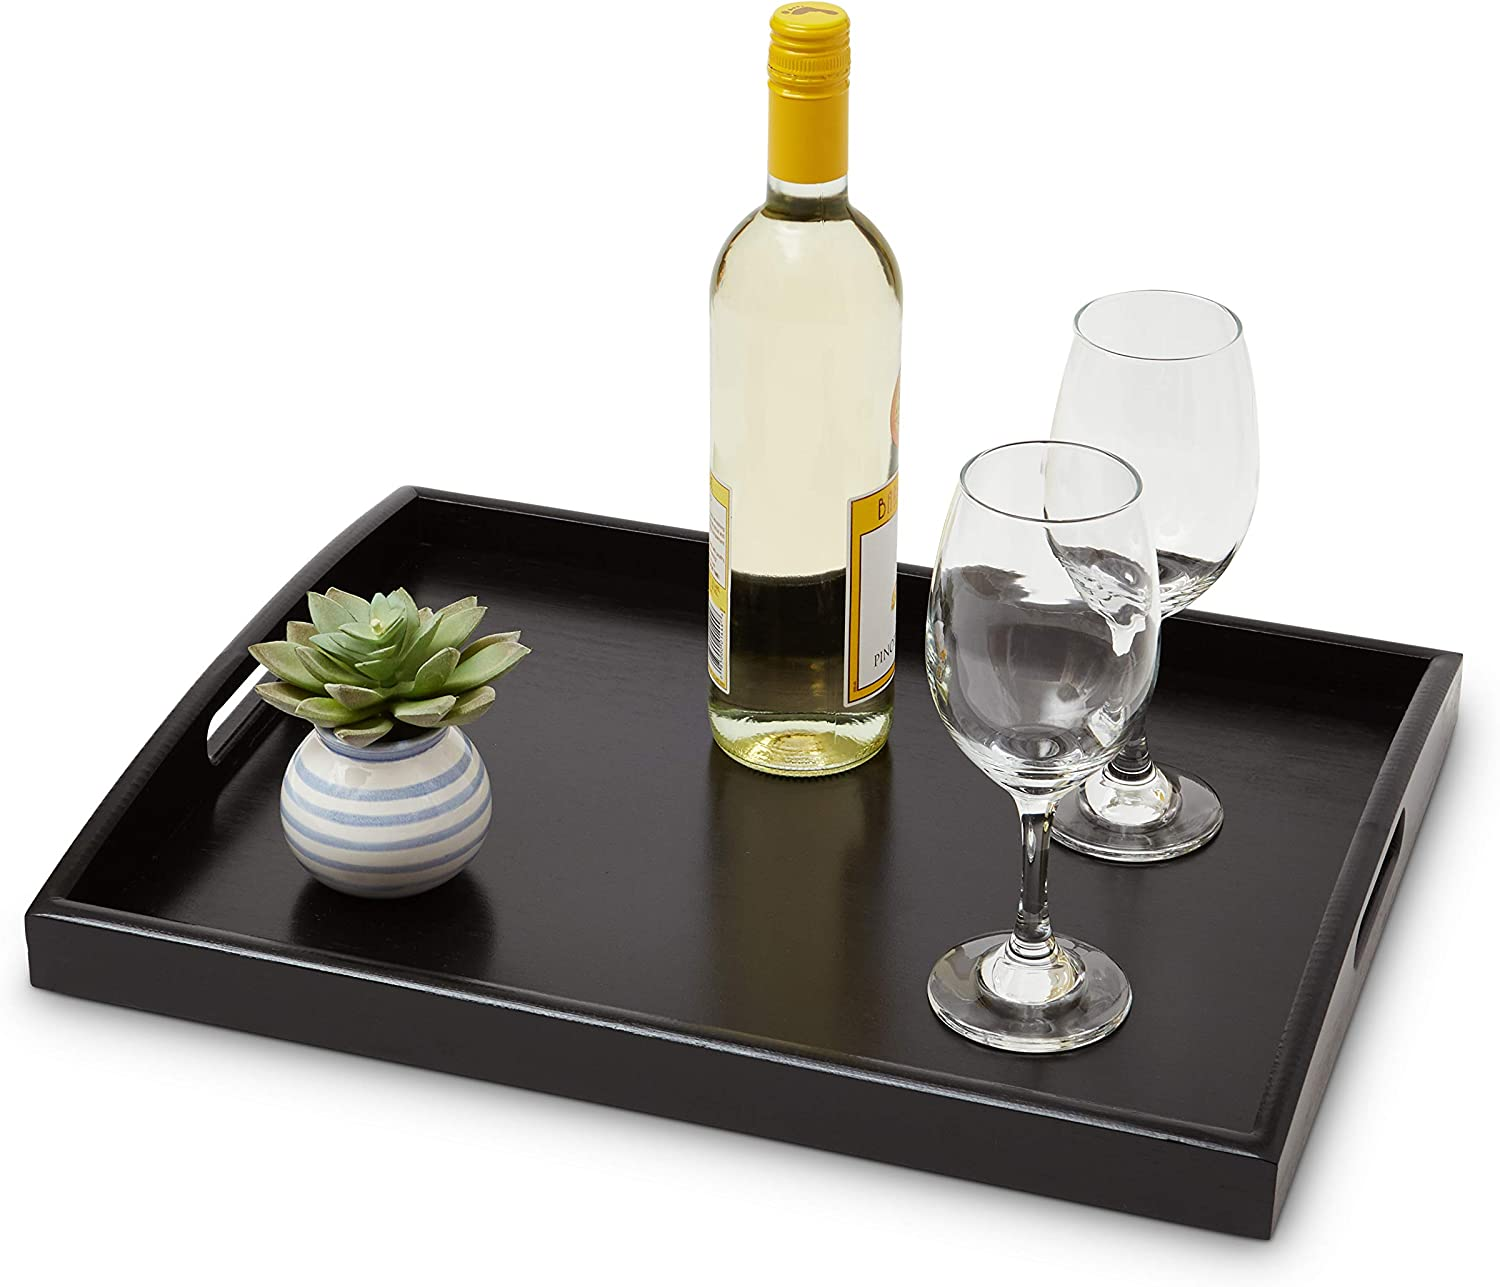 """ModernLuxy 18"""" x 14"""" Decorative Bamboo Serving Tray - Coffee Table Ottoman - Home Foodtrays - Large Food Platter - Decorative Tray - Kitchen Trays - Appetizer Server - Ottoman Tray - Breakfast Tray"""